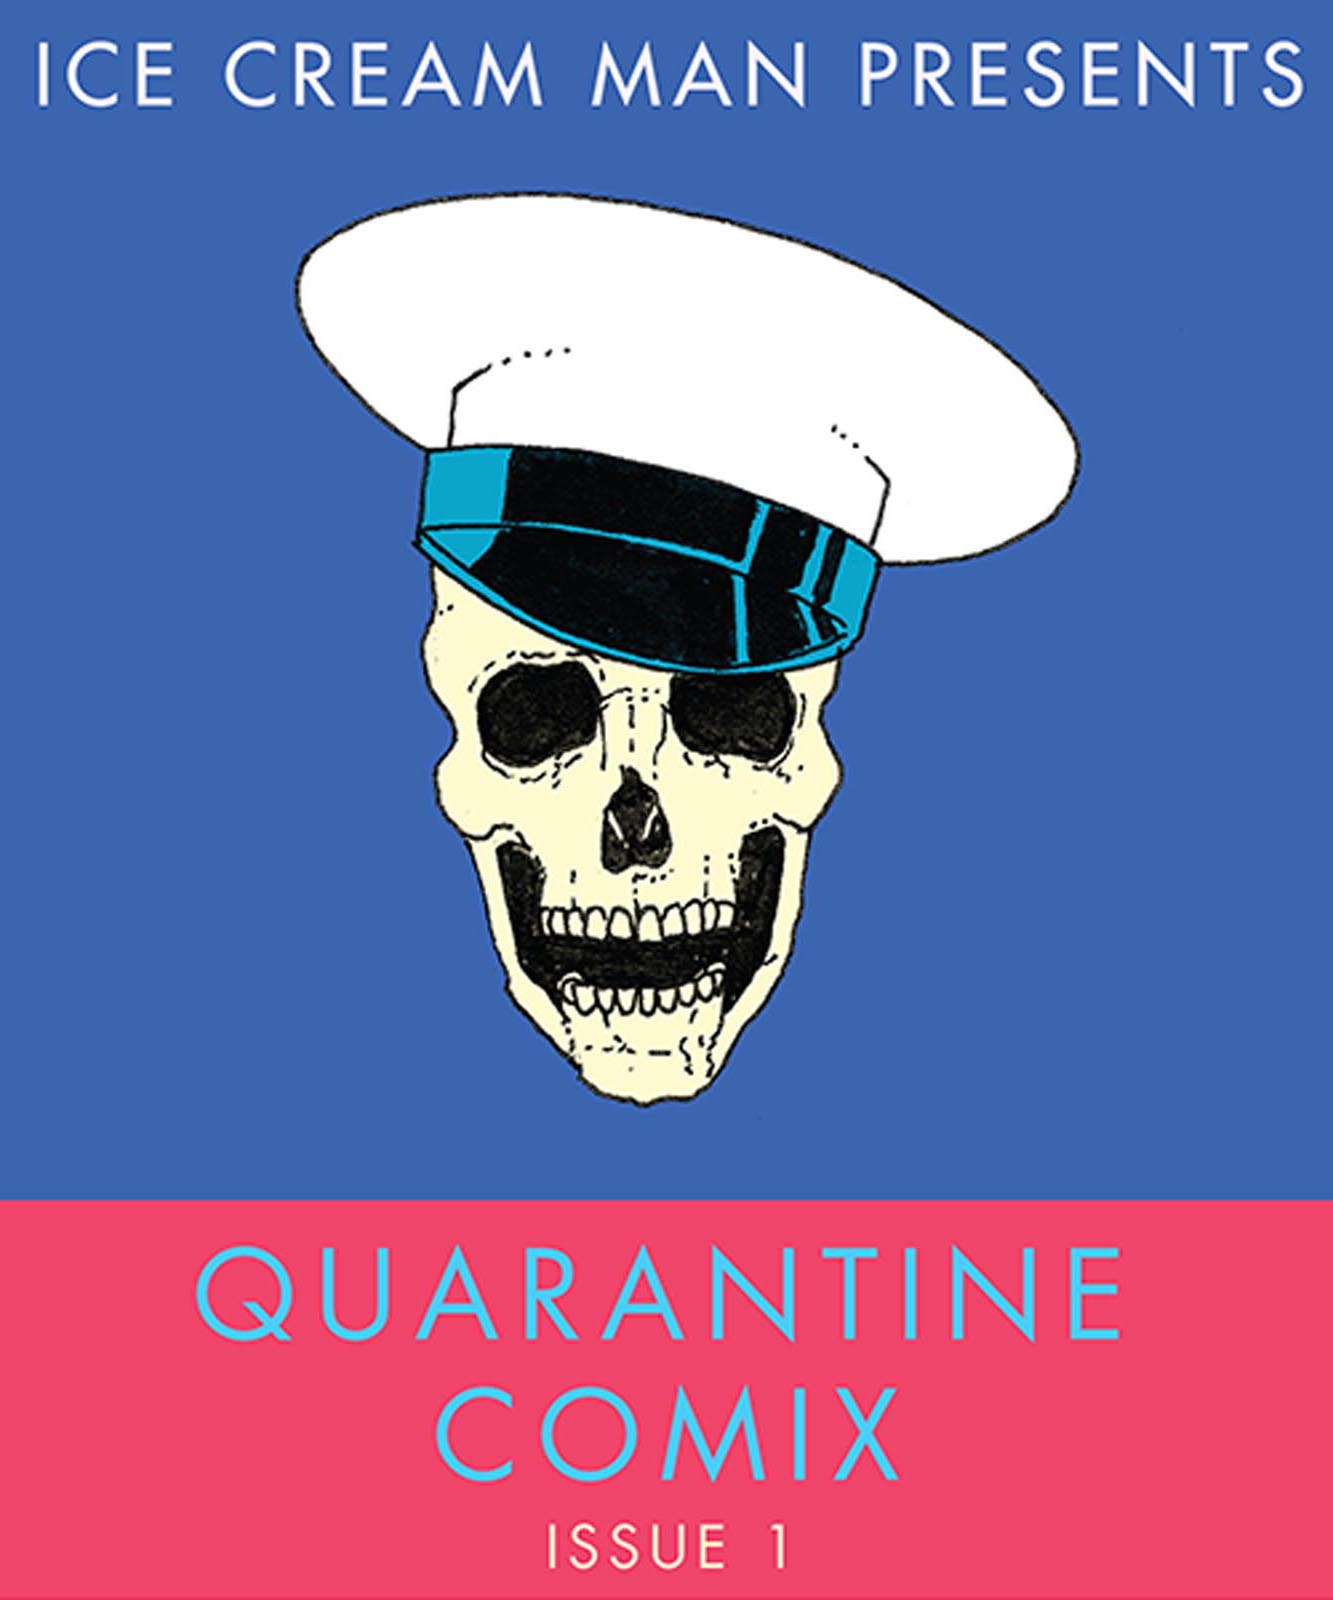 Quarantine comics